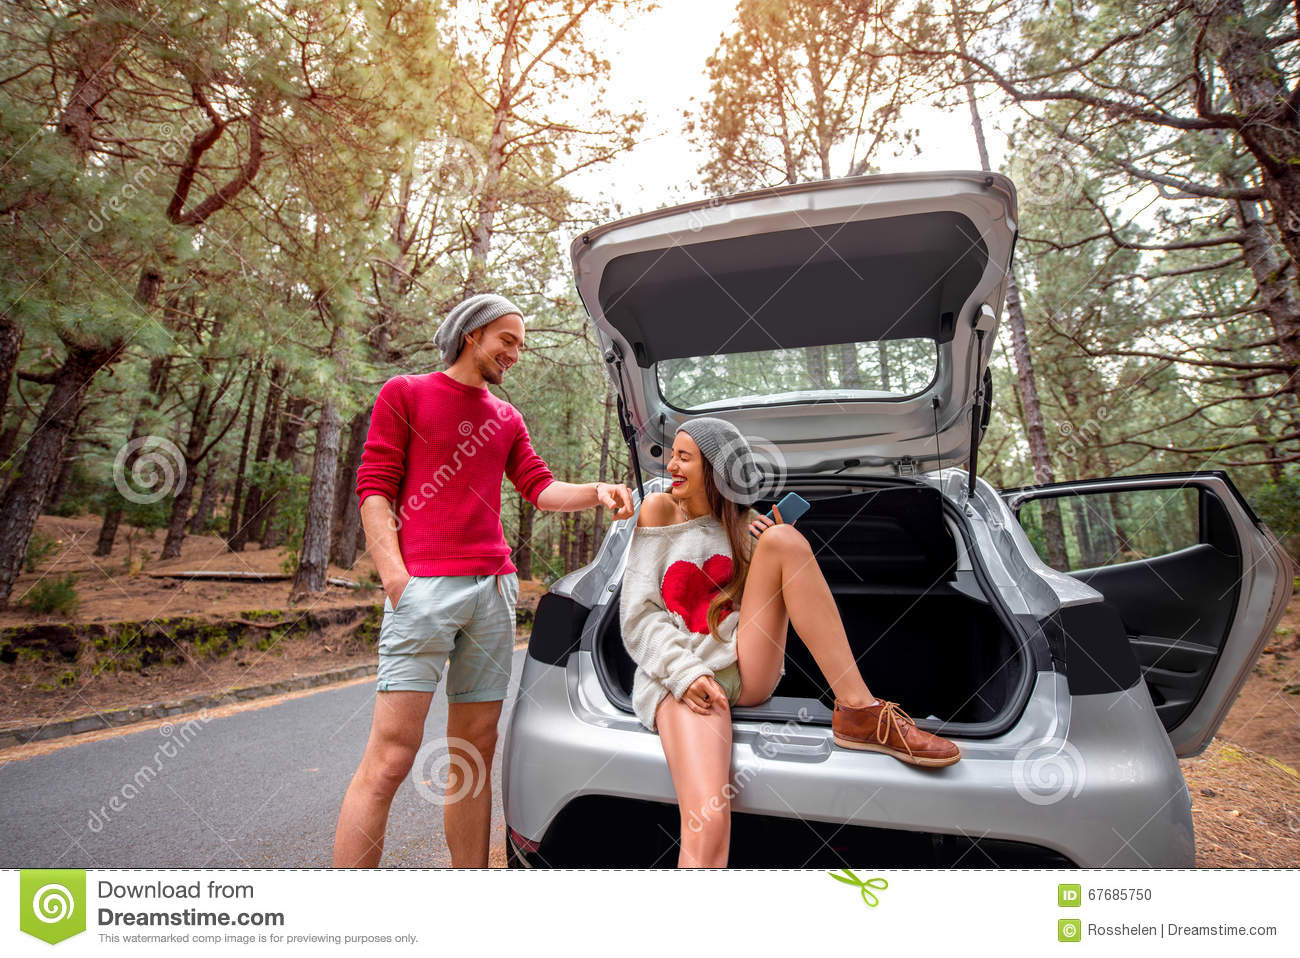 Couple Traveling By Car In The Forest Stock Photo Image Of Outdoors Happy 67685750